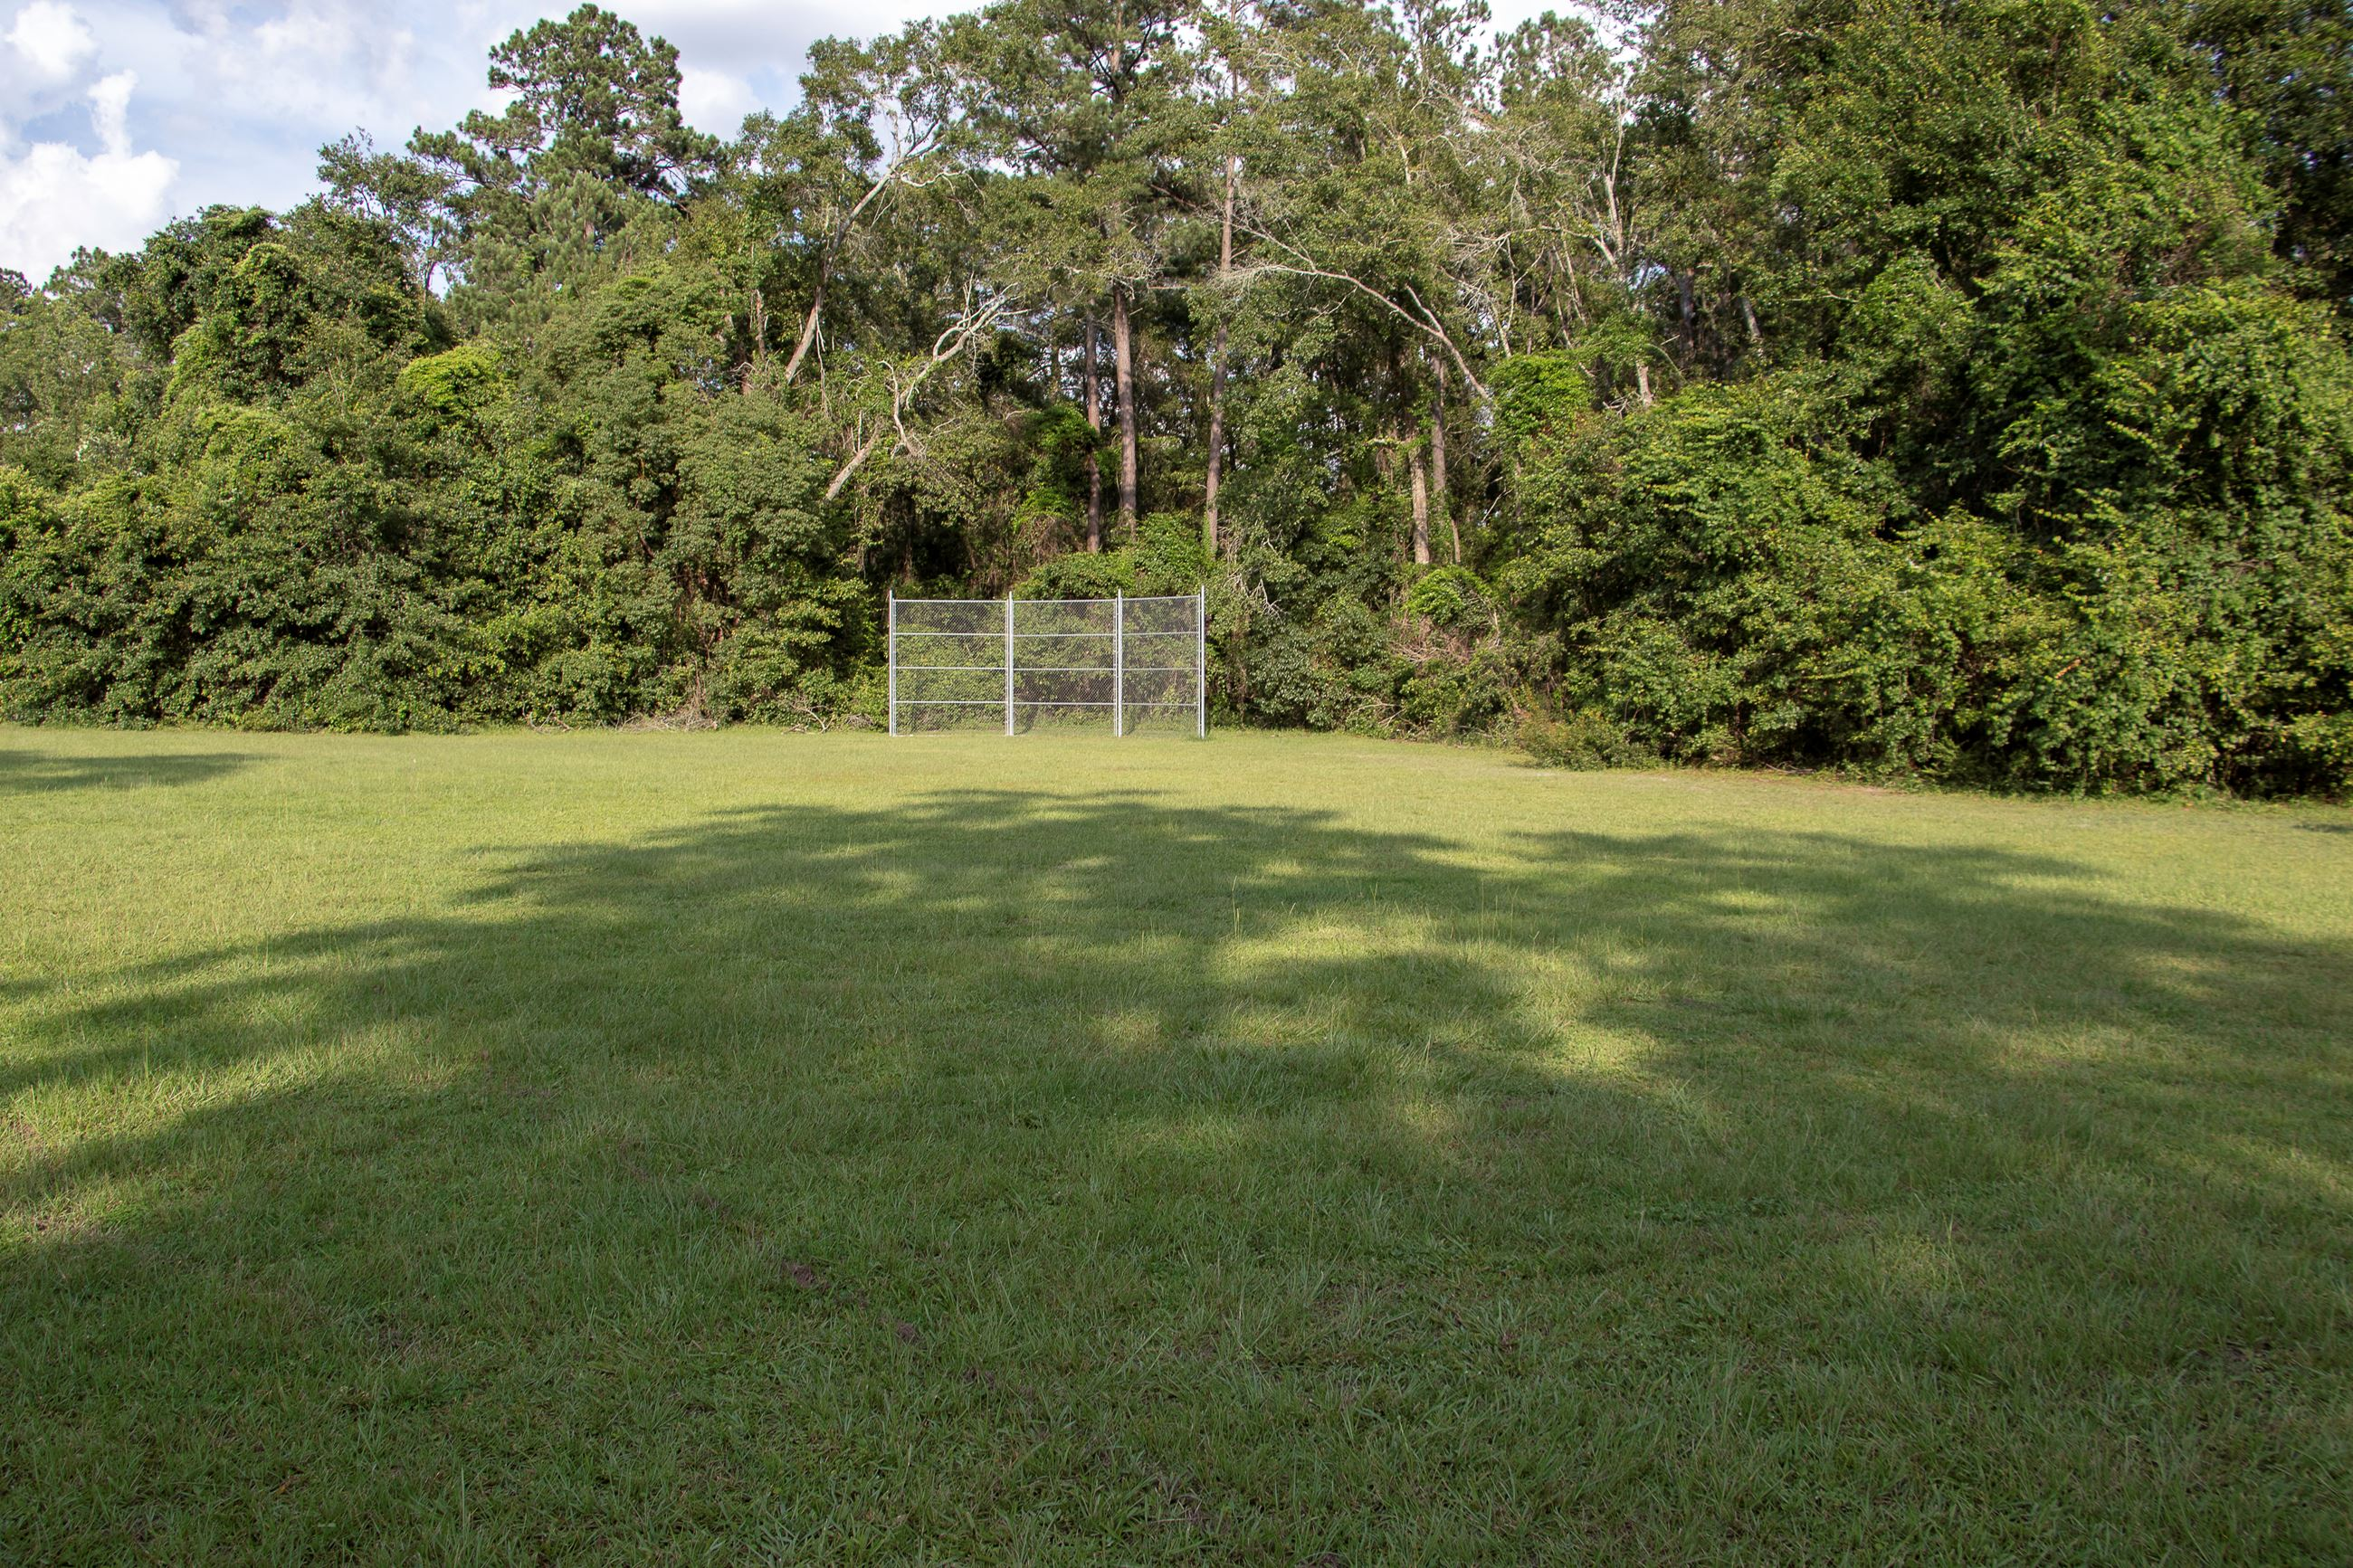 An image of a grassy field with a baseball backstop in the back.